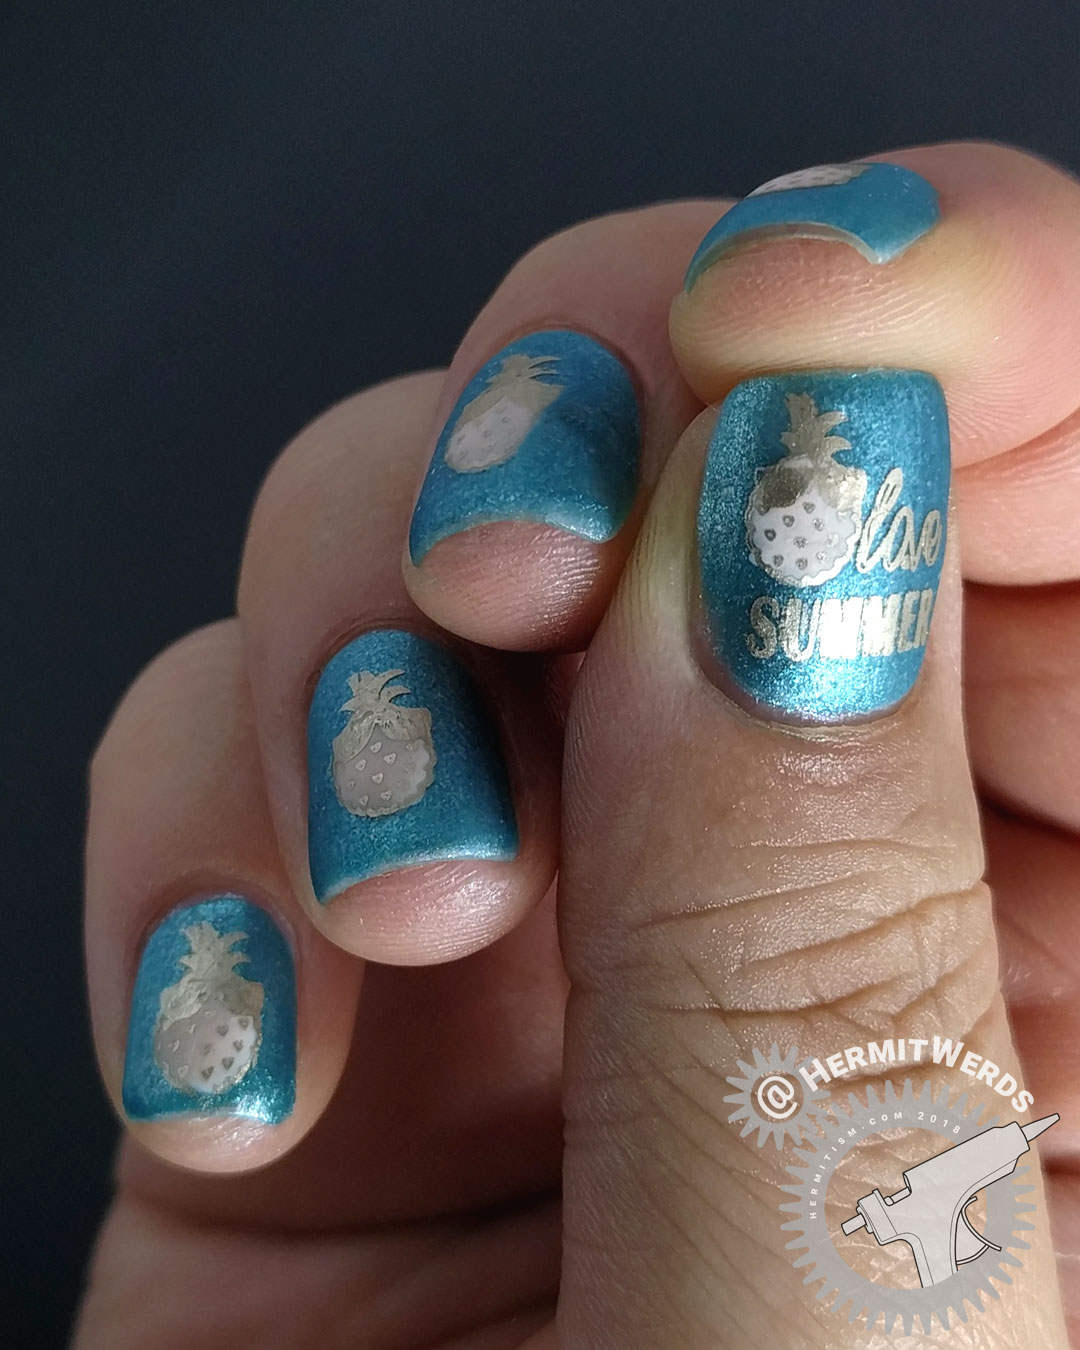 Pink Pineapple - Hermit Werds - matte nail art with pink pineapples on a sparkly blue-green background